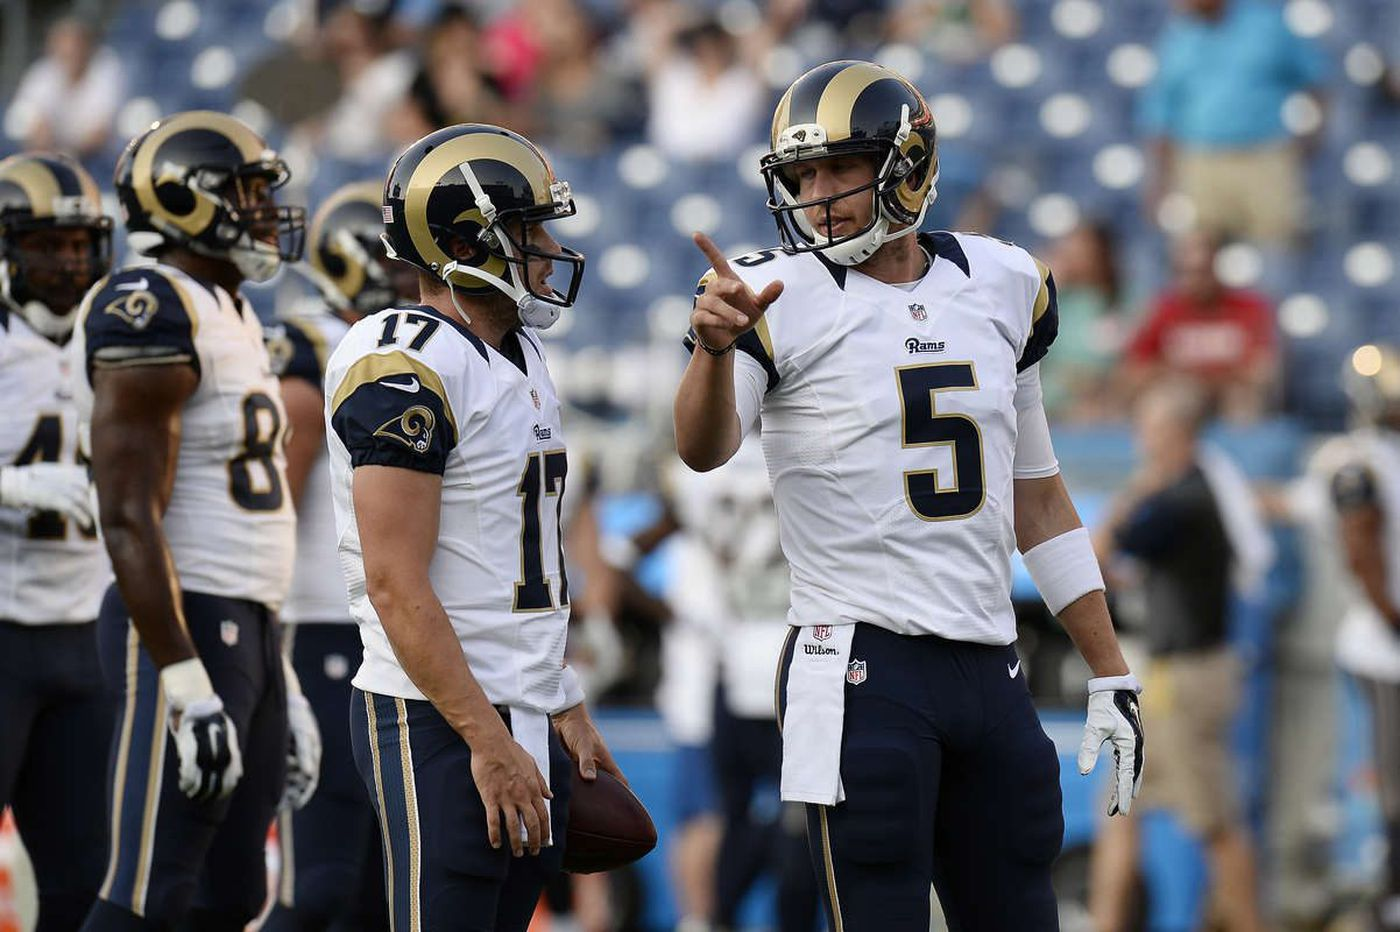 Case Keenum's wild path as a backup quarterback led to unbelievable meeting with Nick Foles | Bob Brookover